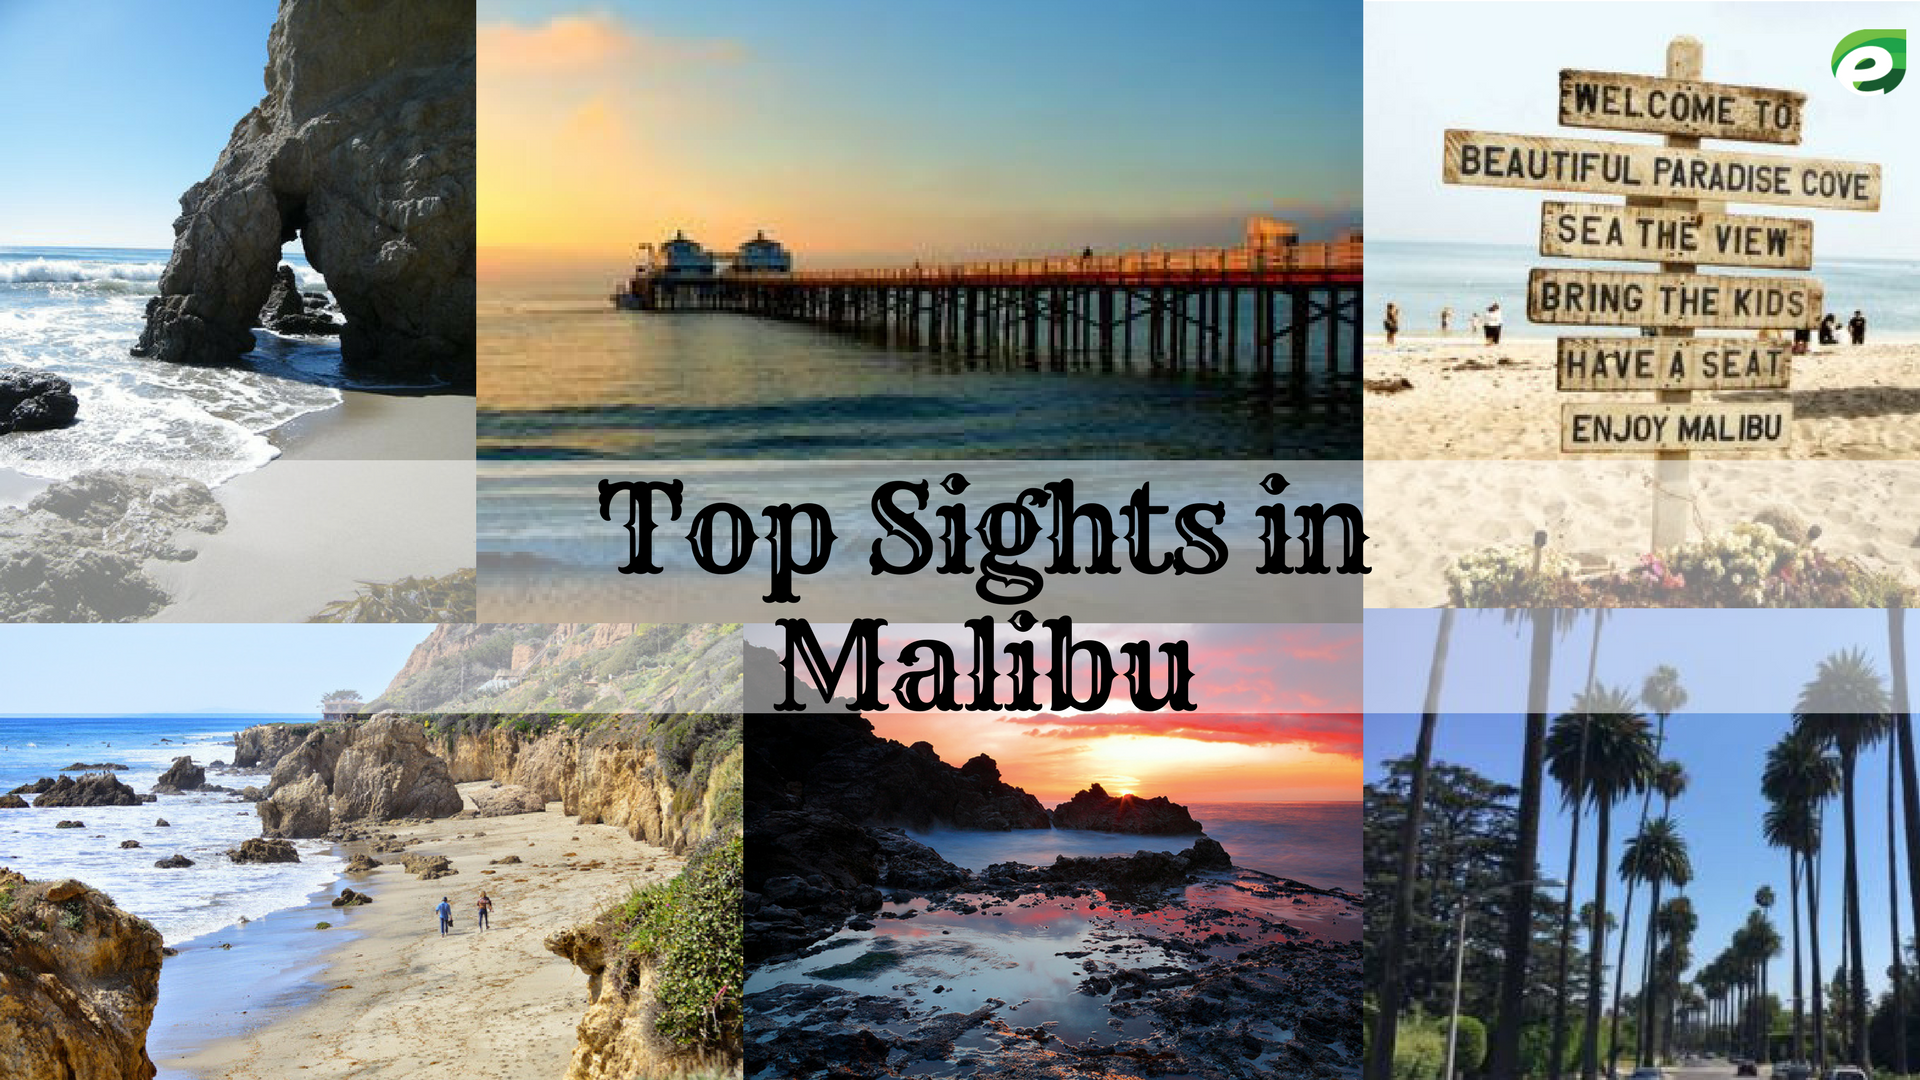 Malibu travel guide - top sights & attractions